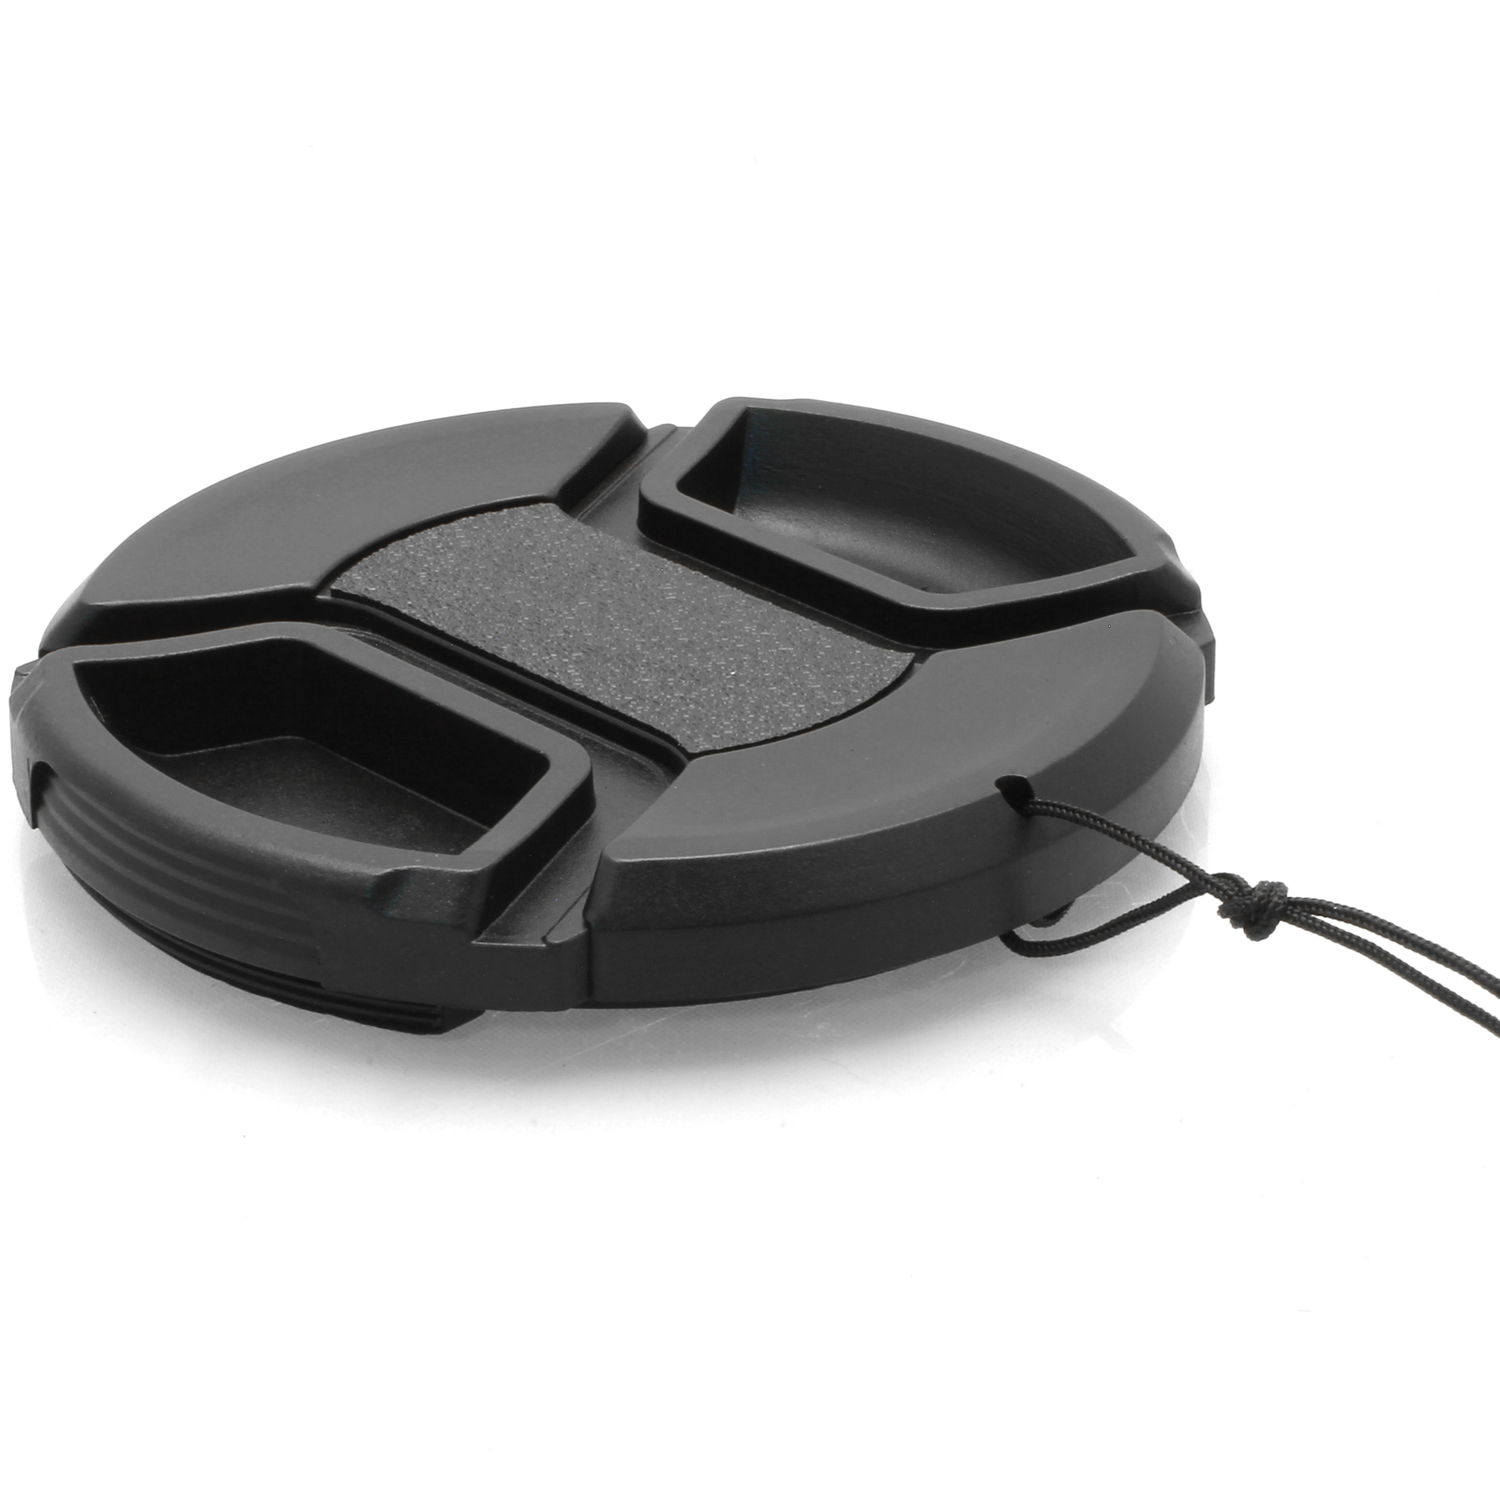 iGadgitz Xtra 72mm Centre Pinch Snap-On Lens Hood Cap Cover with Cord for SLR & DSLR Cameras